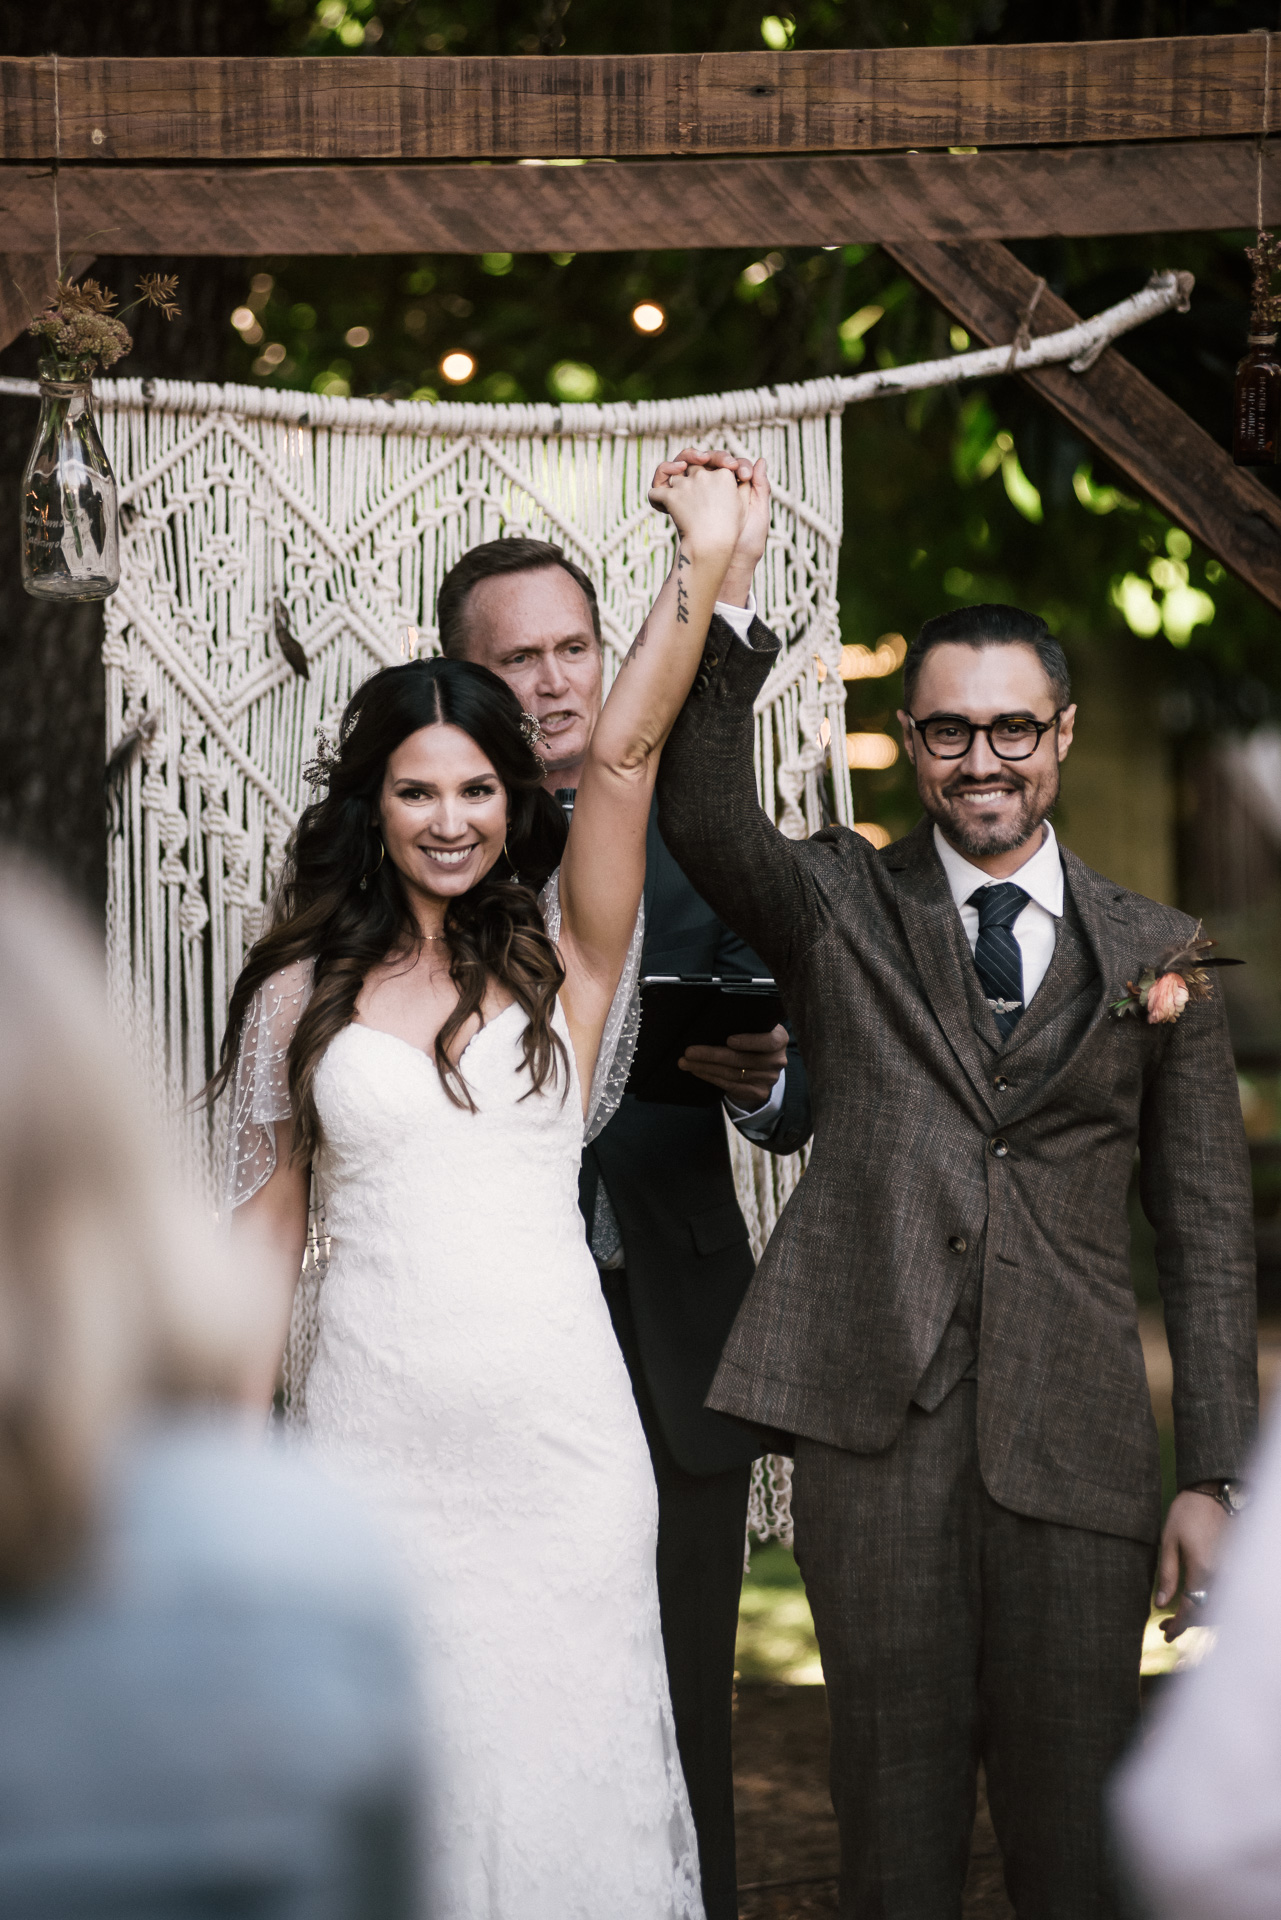 couple celebrates being married shot by wedding photographer at the charming St. George Hotel in Volcano California